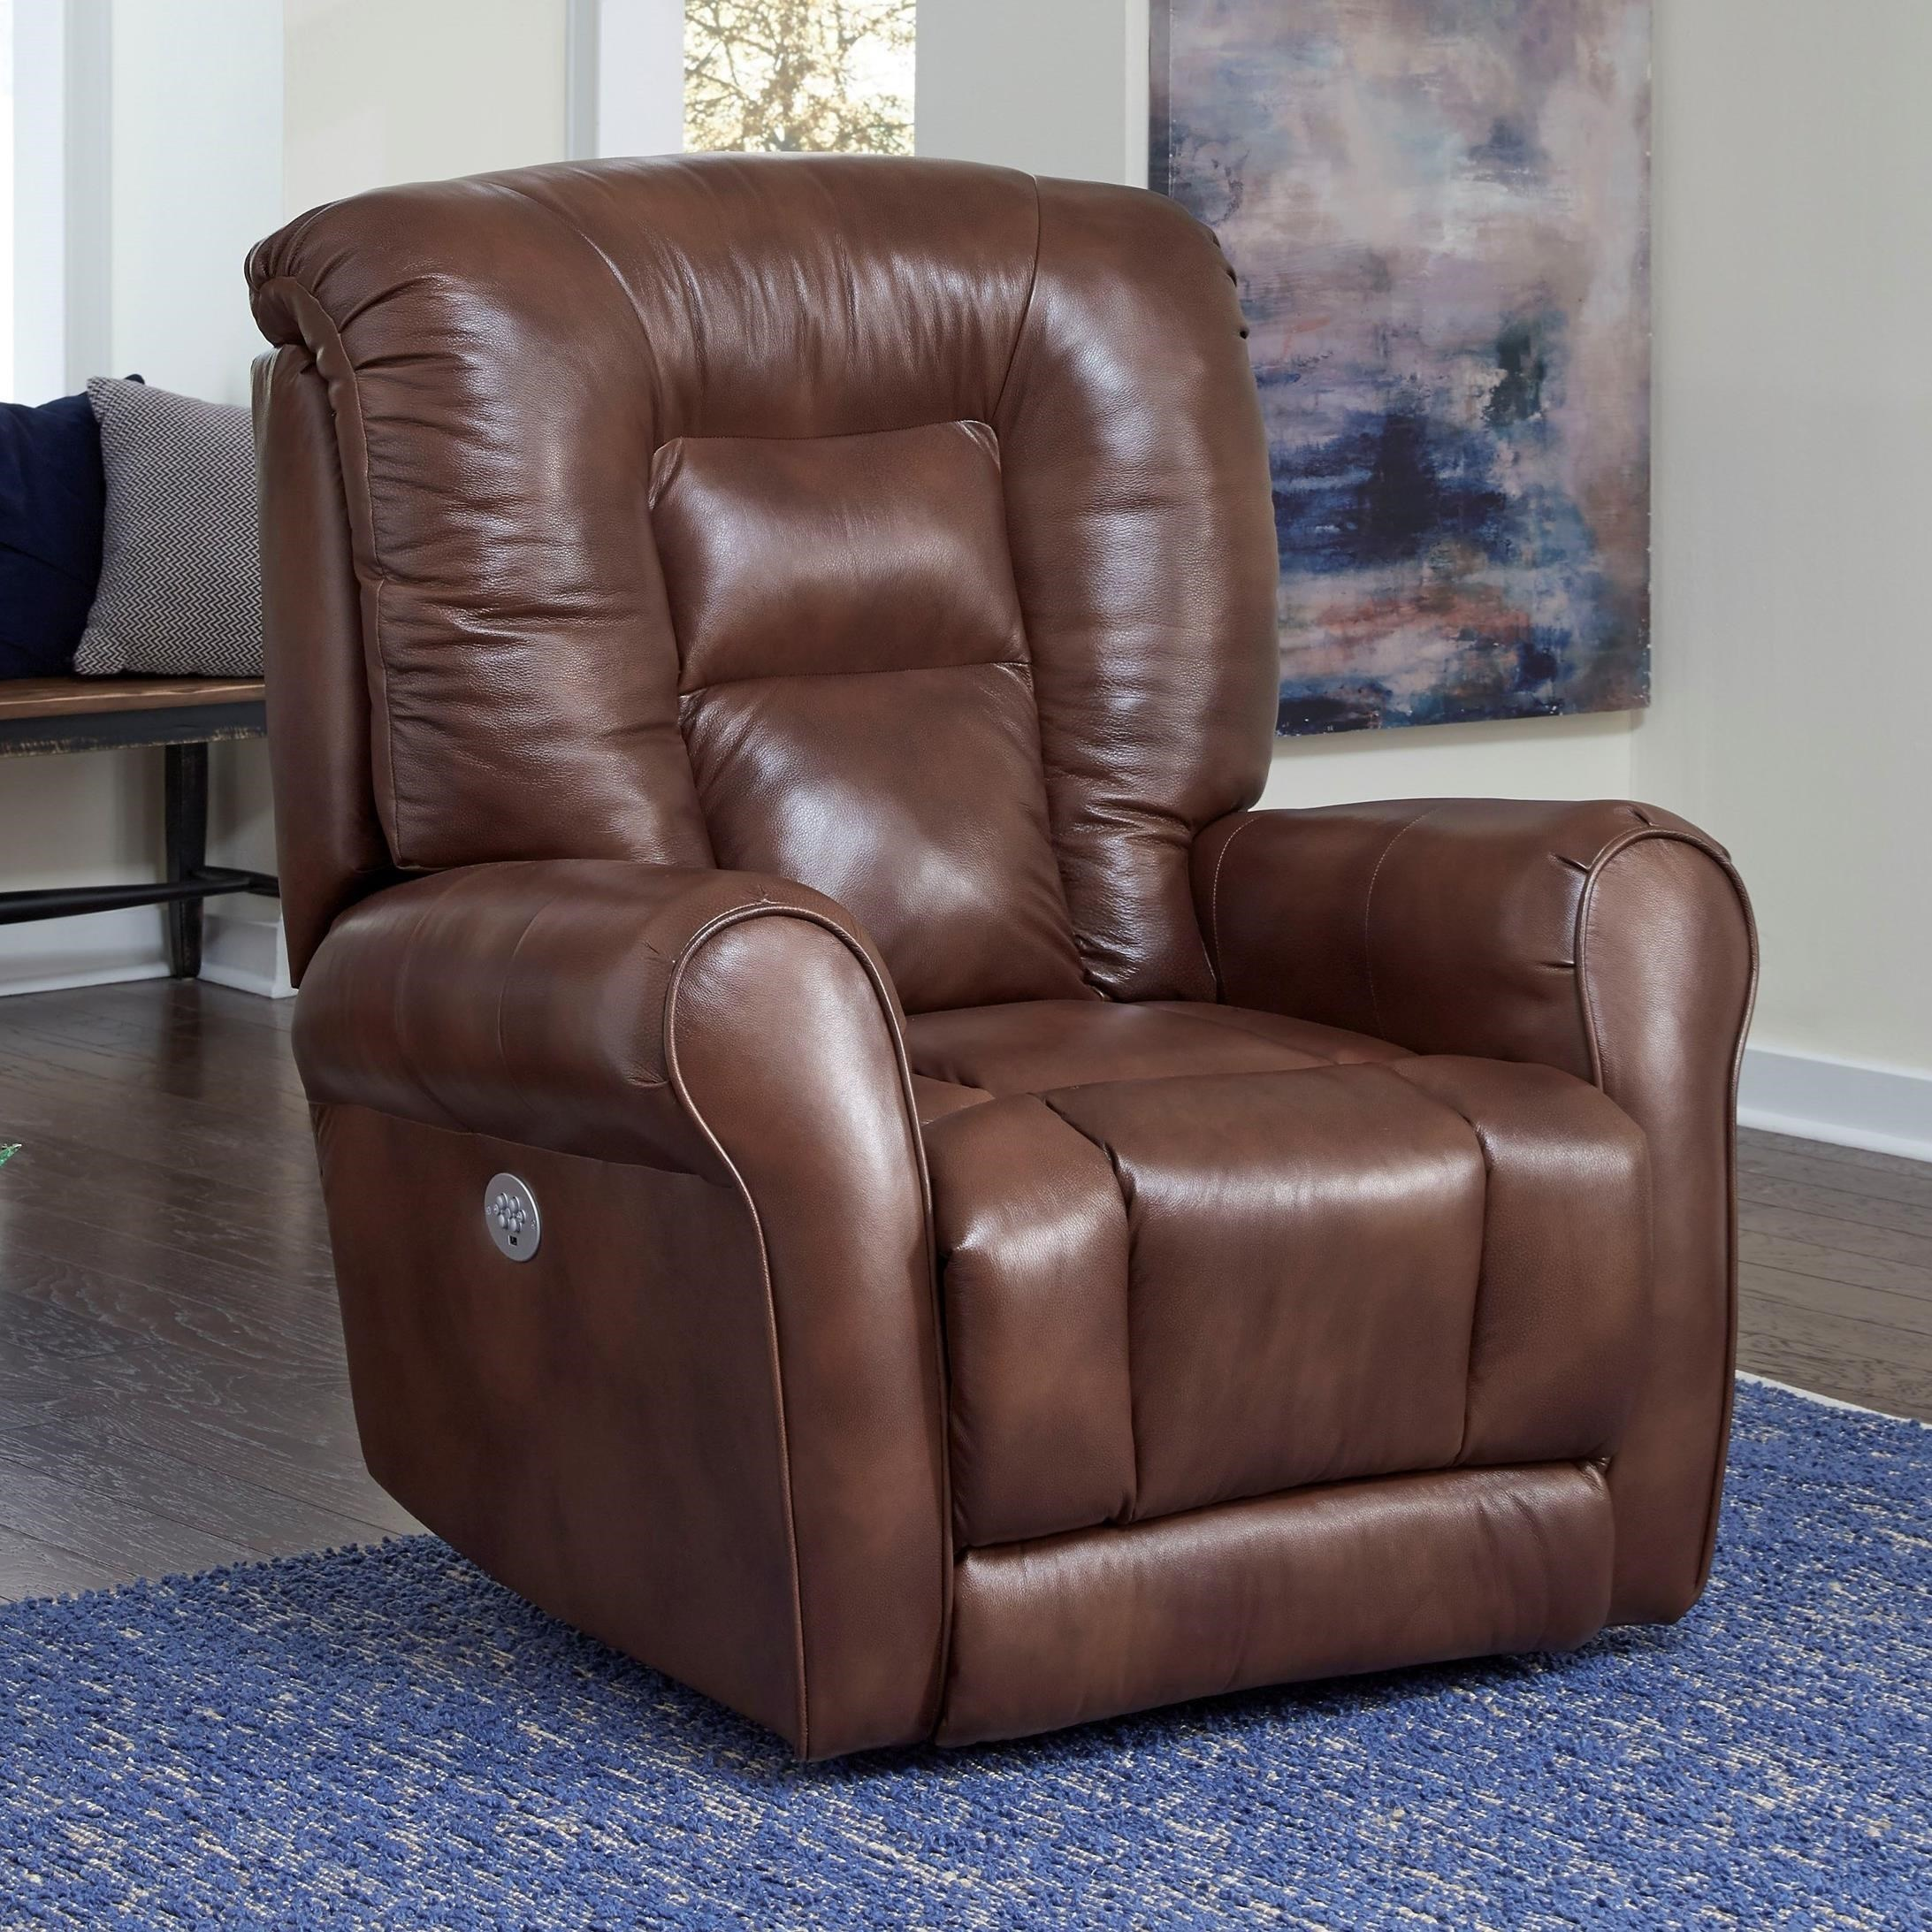 Grand Power Plus Wallhugger Recliner by Southern Motion at Sparks HomeStore